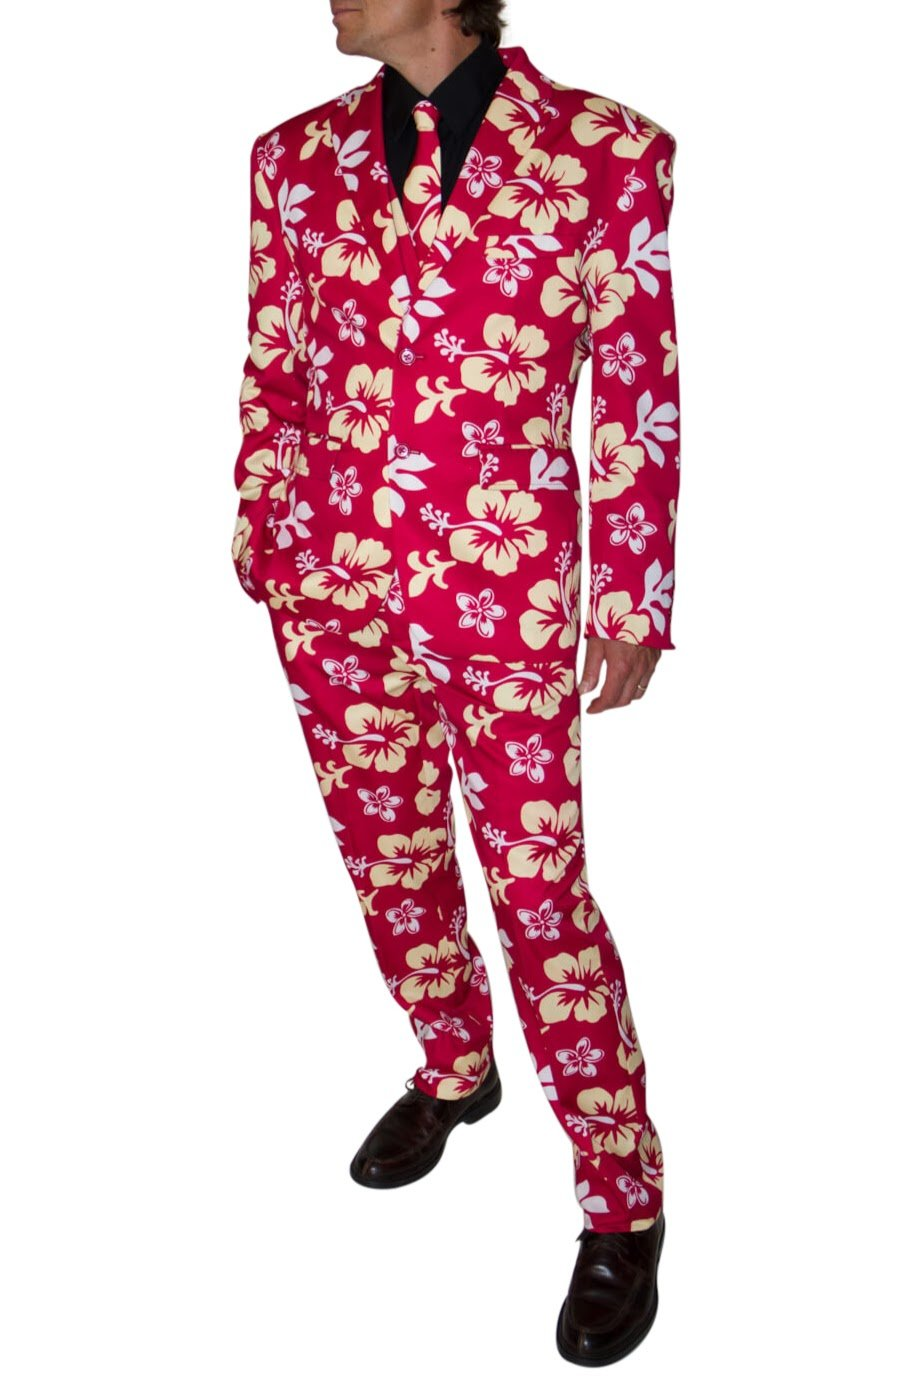 Stir Clothing Co. Big Kahuna Mens Hawaiian Floral Print Party Suit With Adjustable Hem Tape (42, Red Hibiscus)